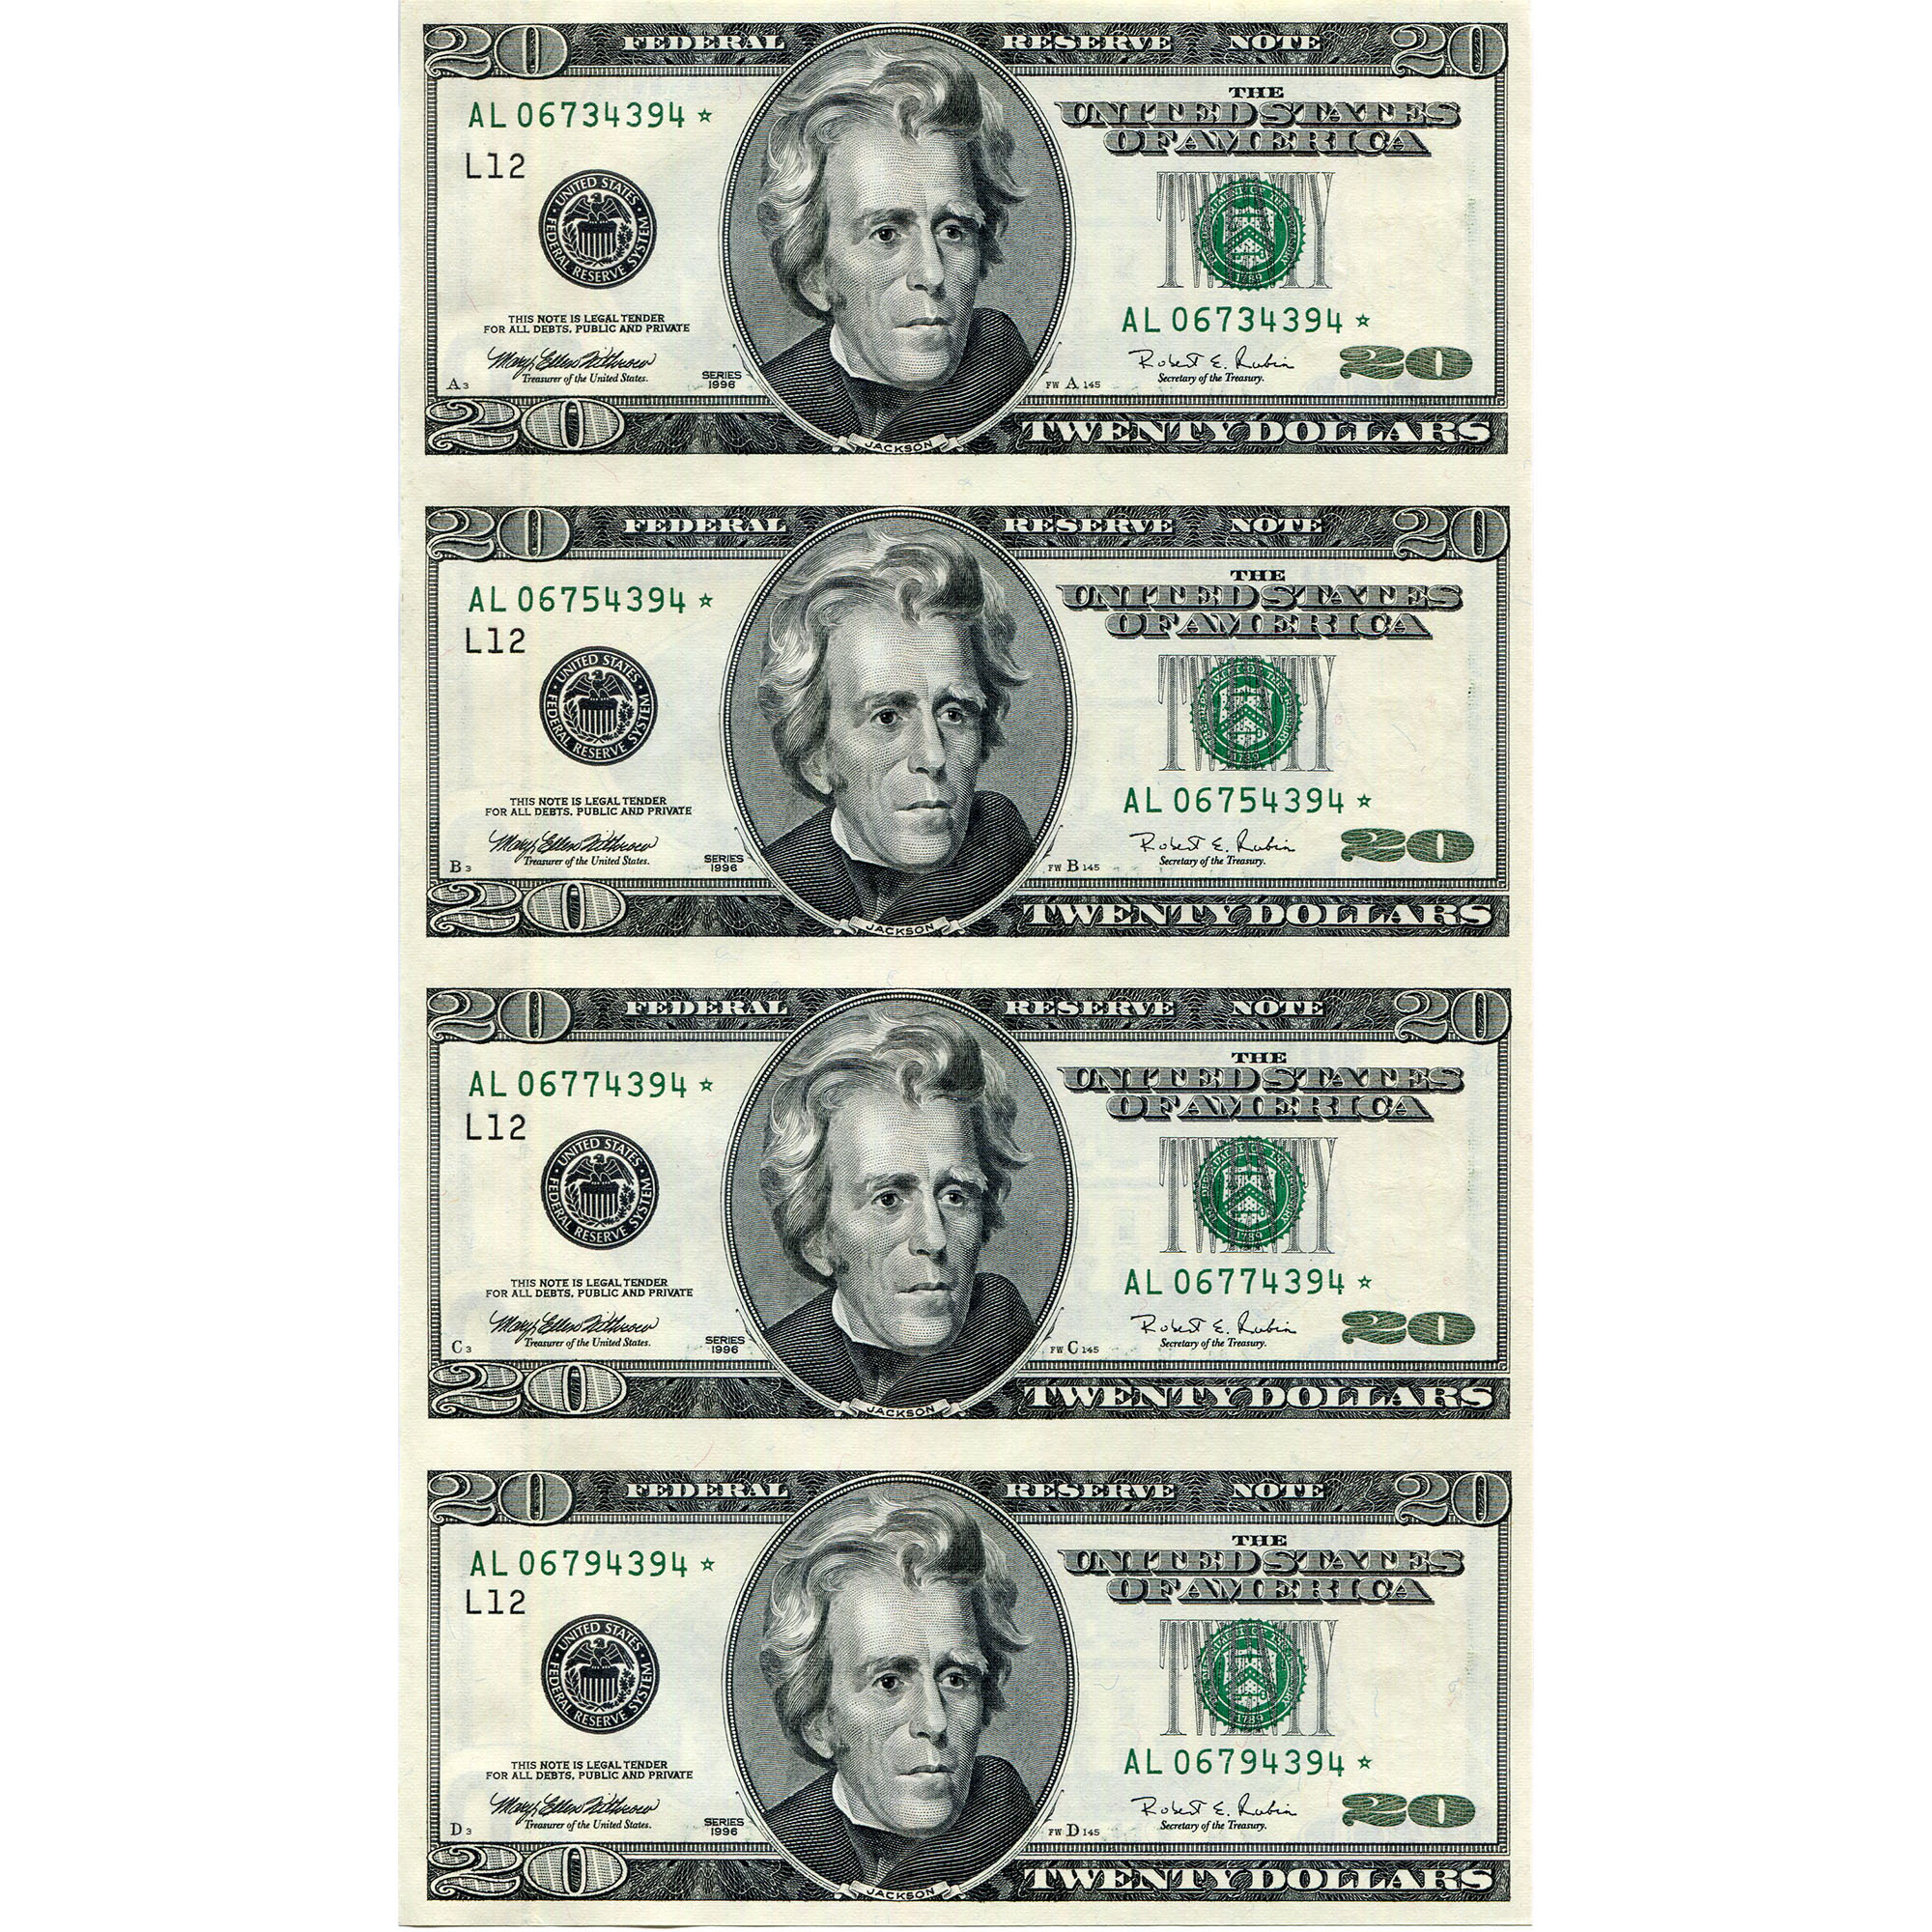 $20 Uncut Currency Sheets